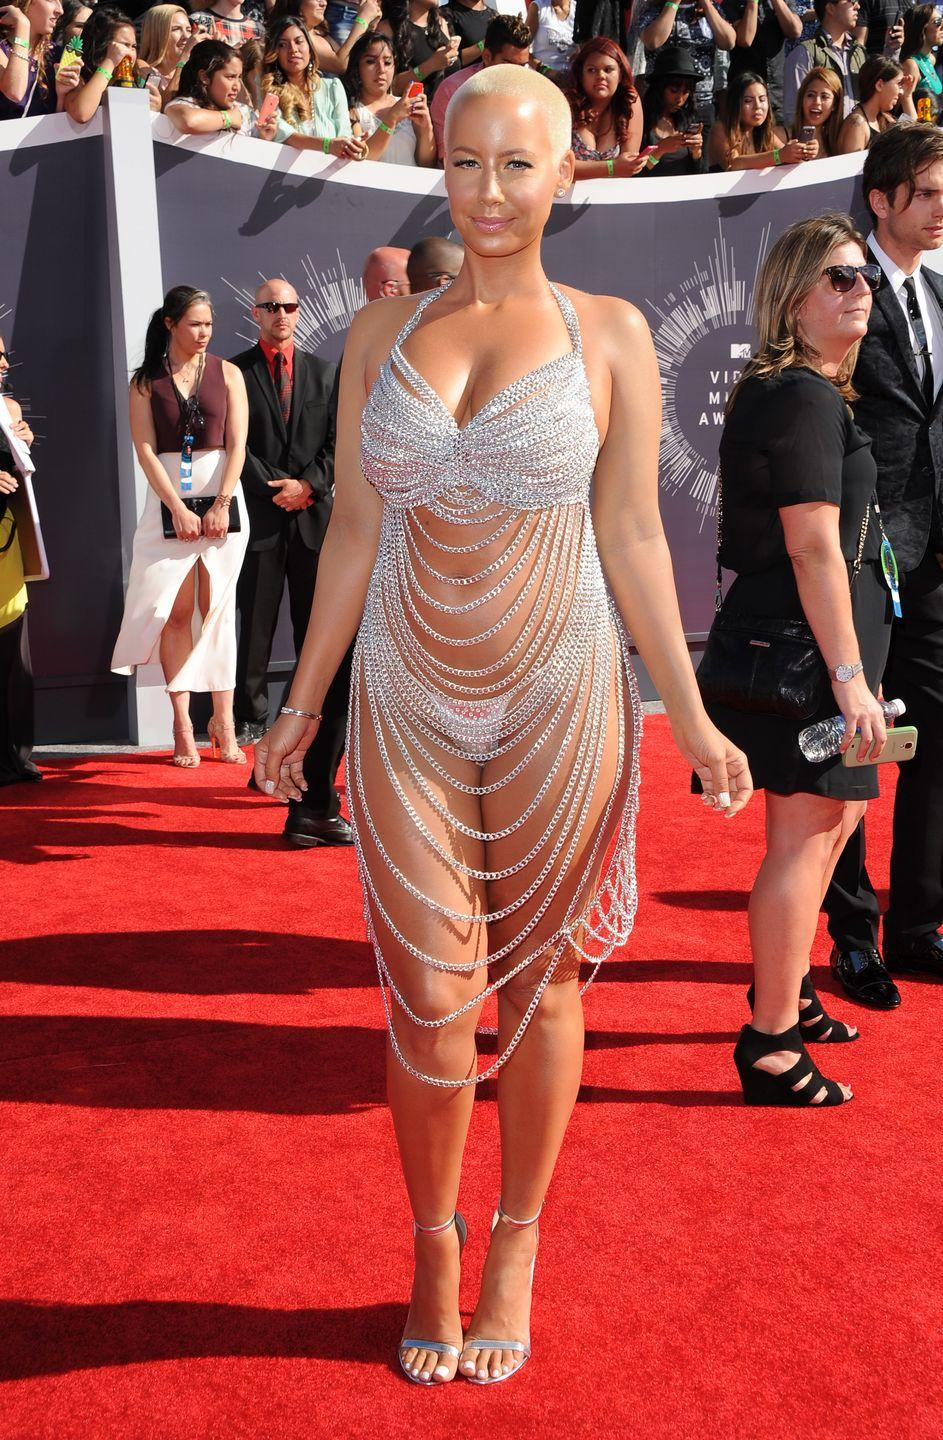 <p>Another VMA's dress, another outfit leaving little to the imagination. Amber Rose showed some skin with a bright and stringy outfit that rivals that of Rose McGowan's in 1998.</p>